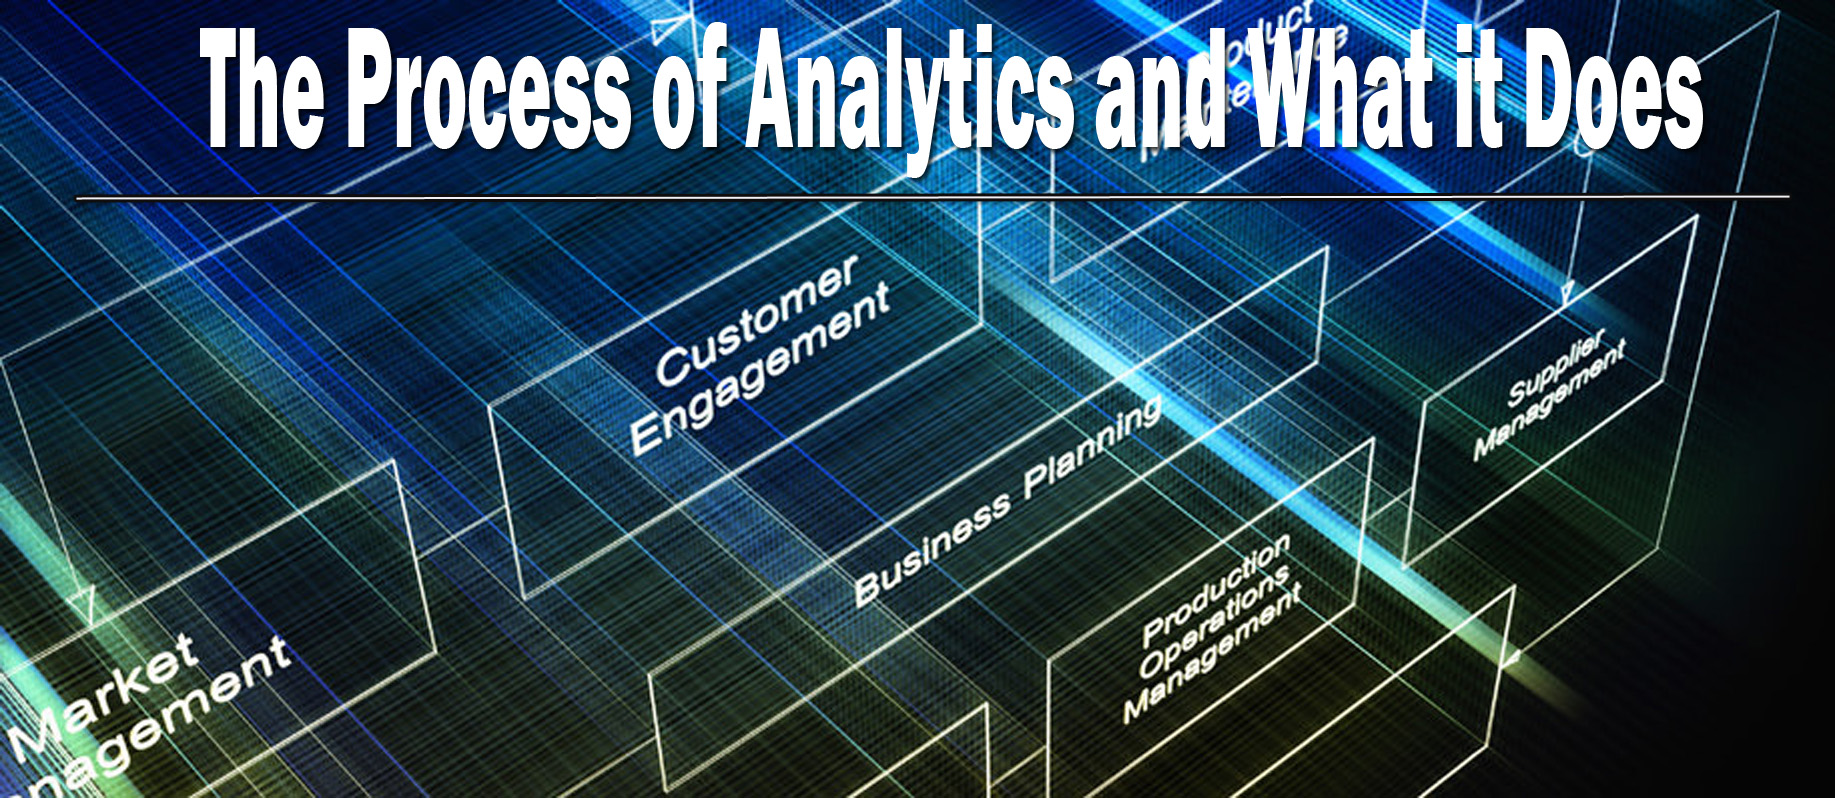 The Process of Analytics and What it Does